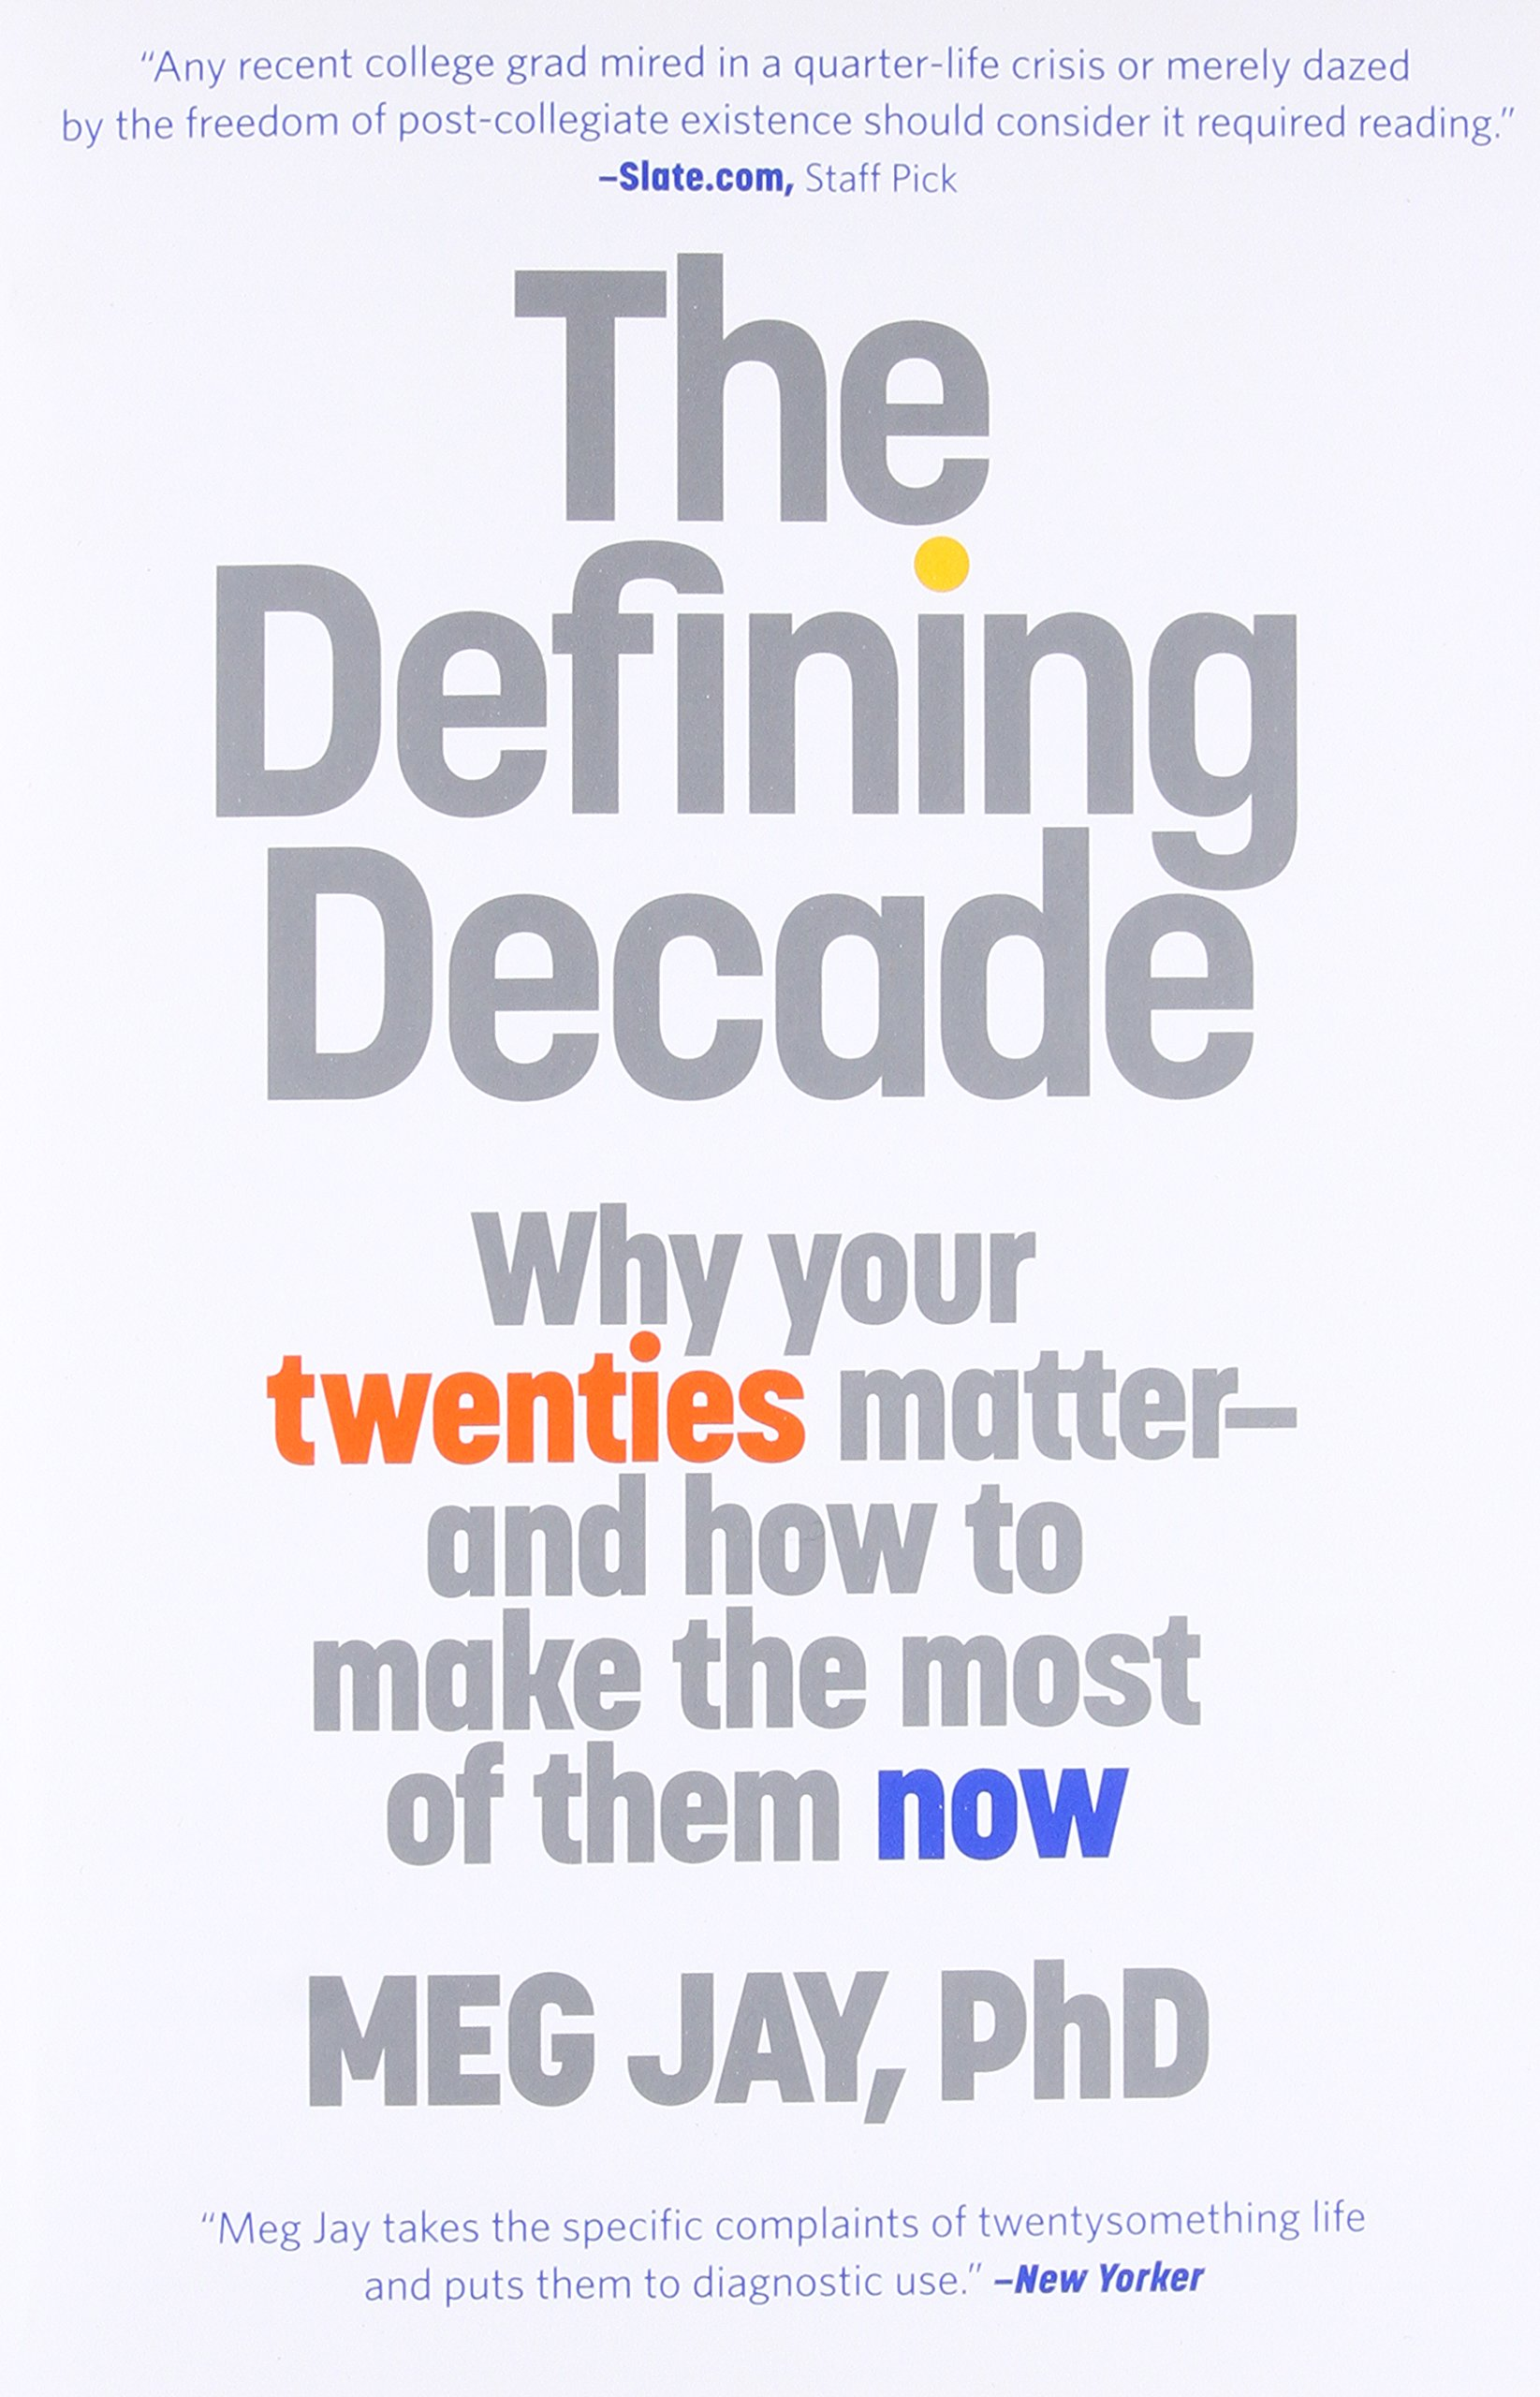 """Our """"30-is-the-new-20"""" culture tells us that the twentysomething years don't matter. Some say they are an extended adolescence. Others call them an emerging adulthood. But 30 is not the new 20. In this enlightening book, Dr. Meg Jay reveals how many twentysomethings have been caught in a swirl of hype and misinformation that has trivialized what are actually the most defining years of adulthood."""